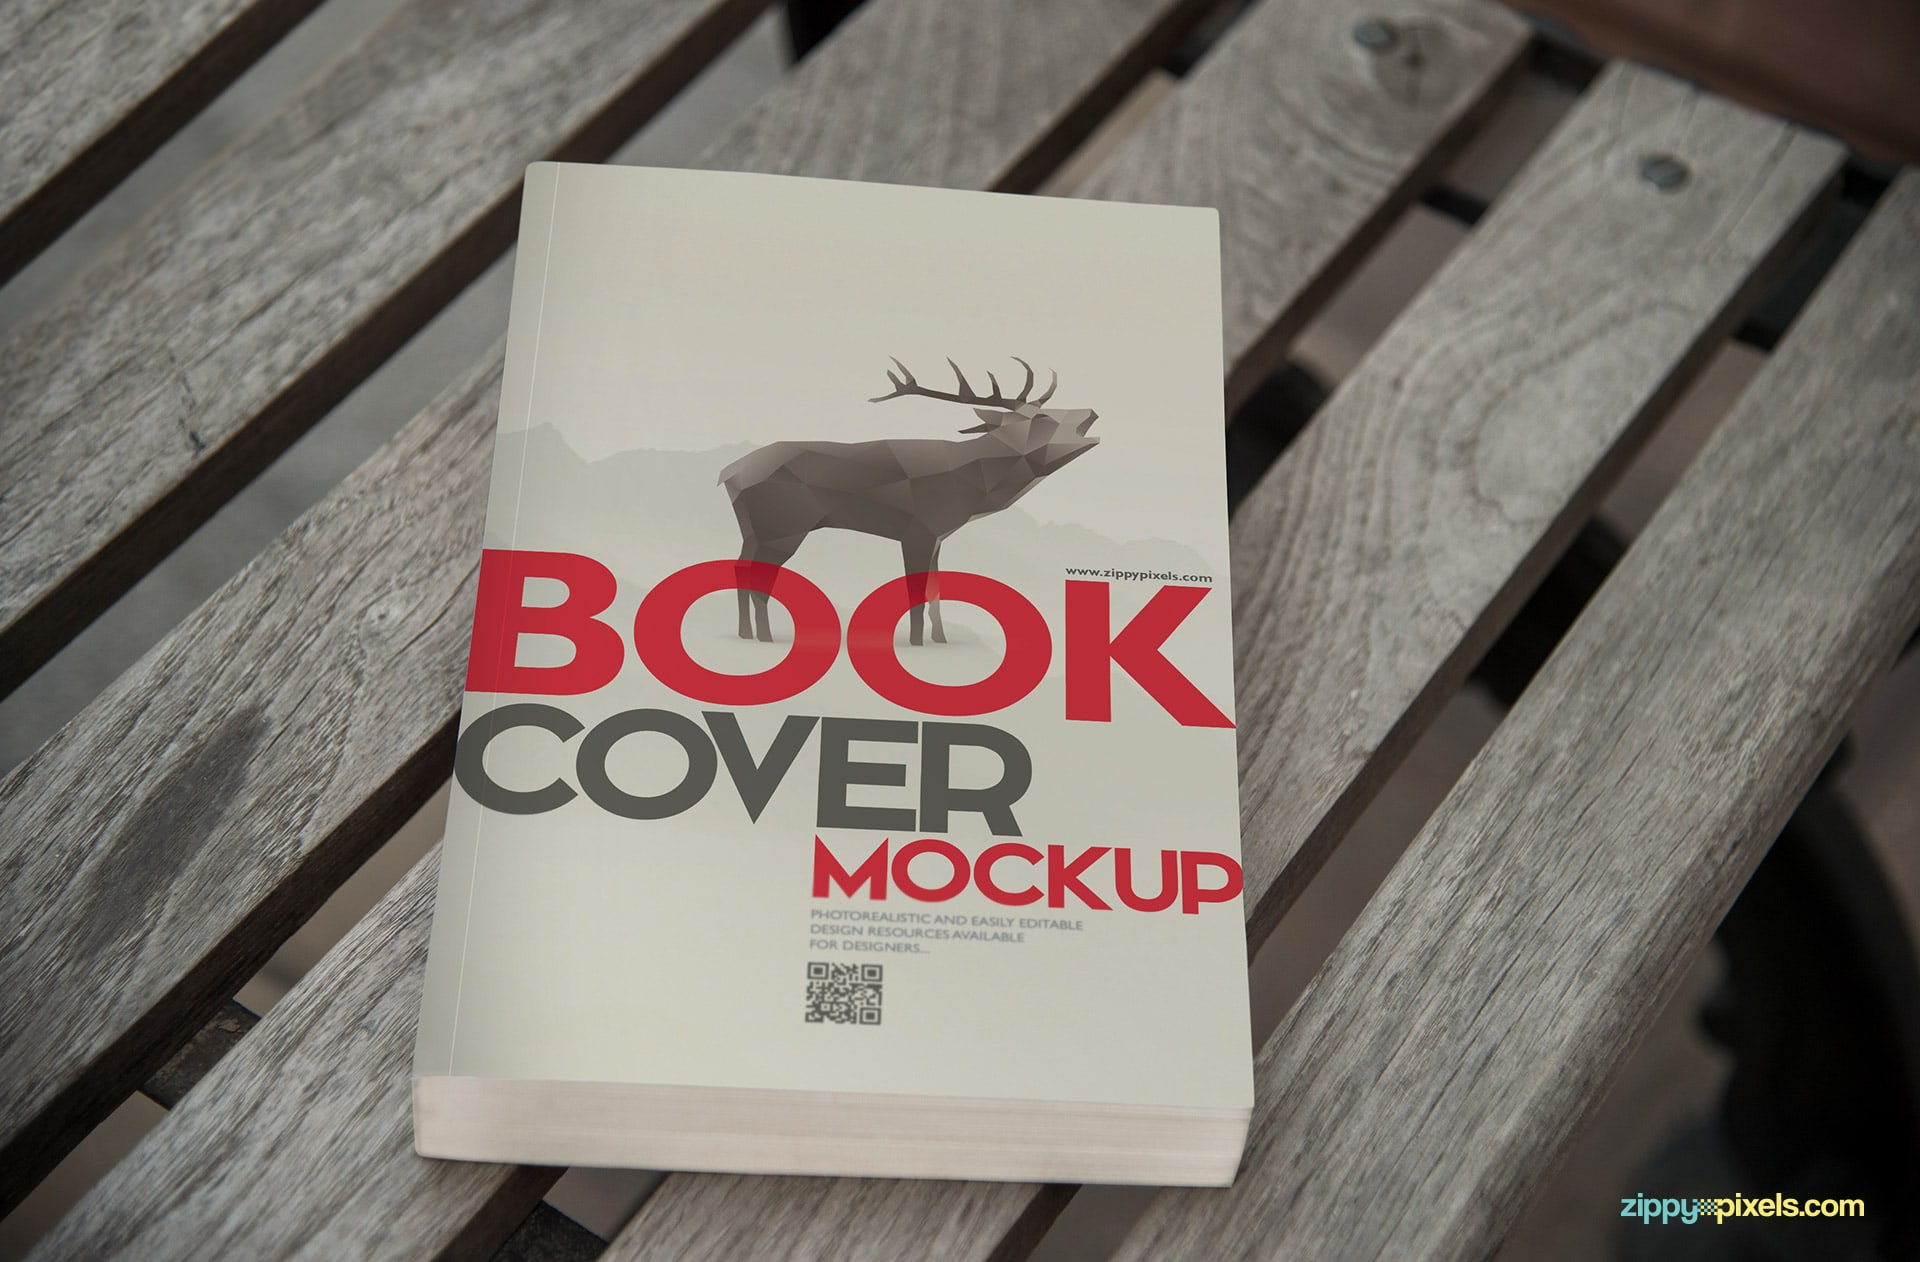 Book mockup of zoomed in view of paperback book lying on wood plank bench